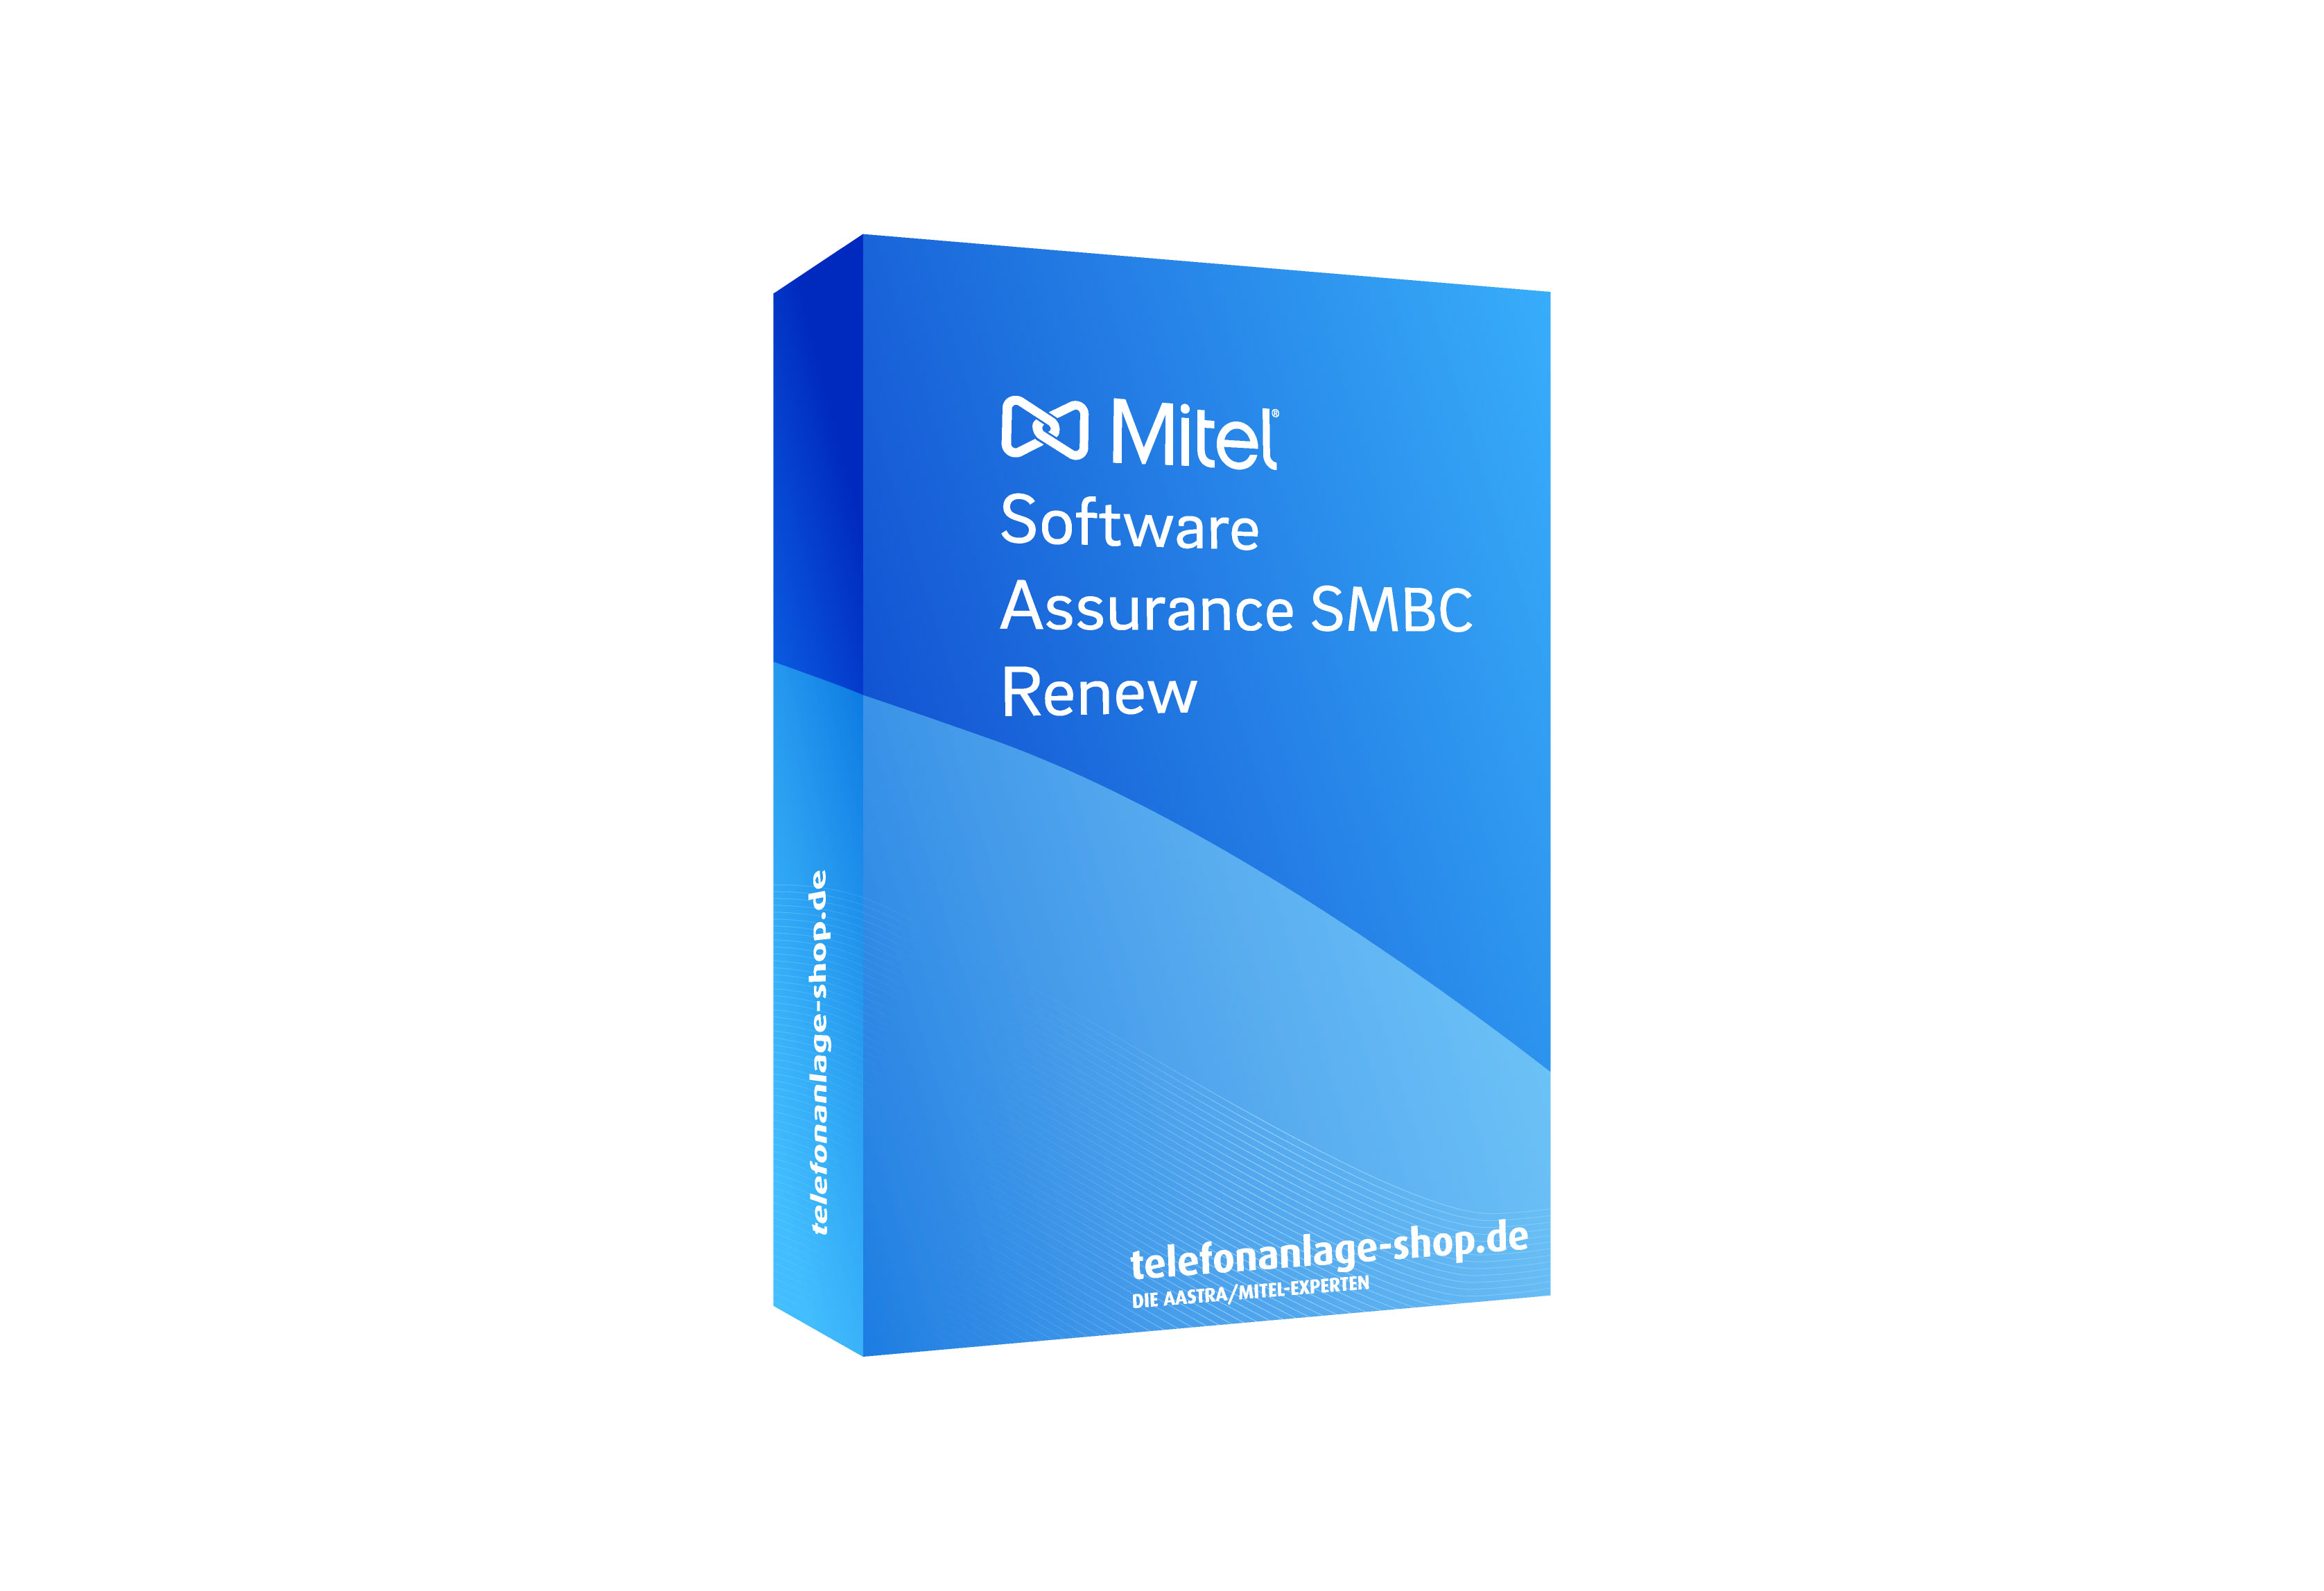 Vollansicht - Mitel Software Assurance SMBC Renew